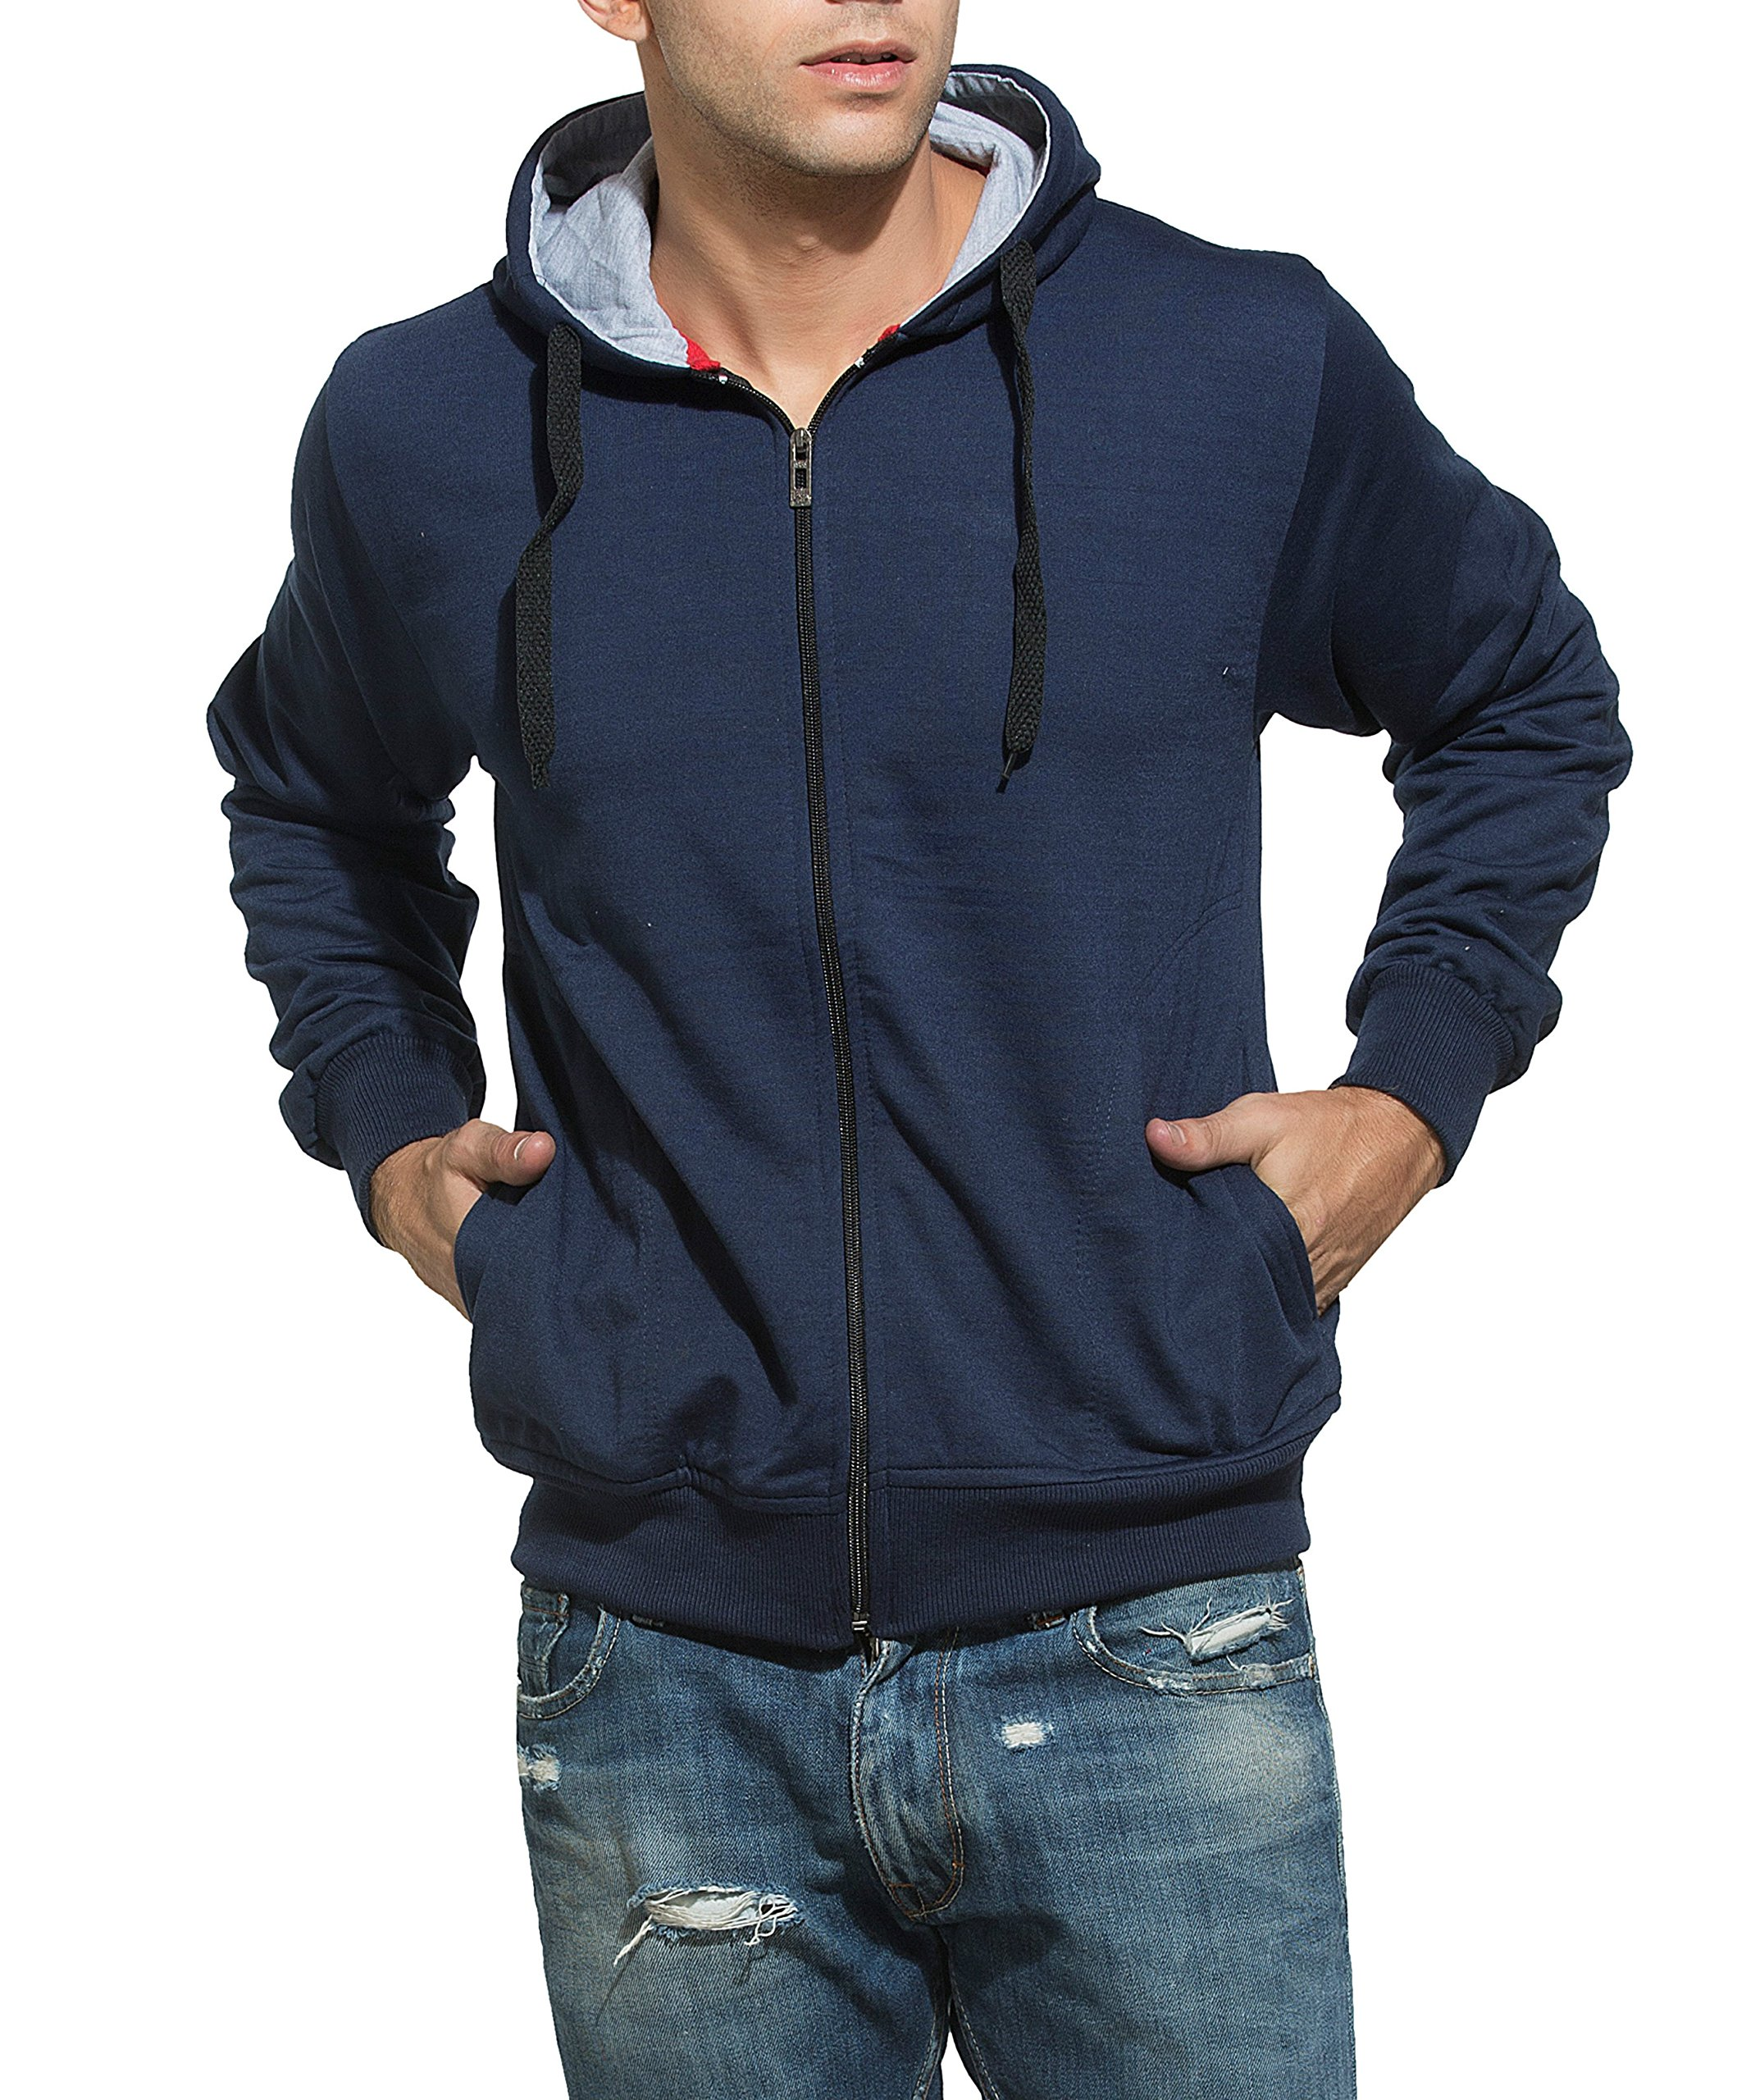 Alan Jones Clothing Men's Cotton Hooded Sweatshirt product image